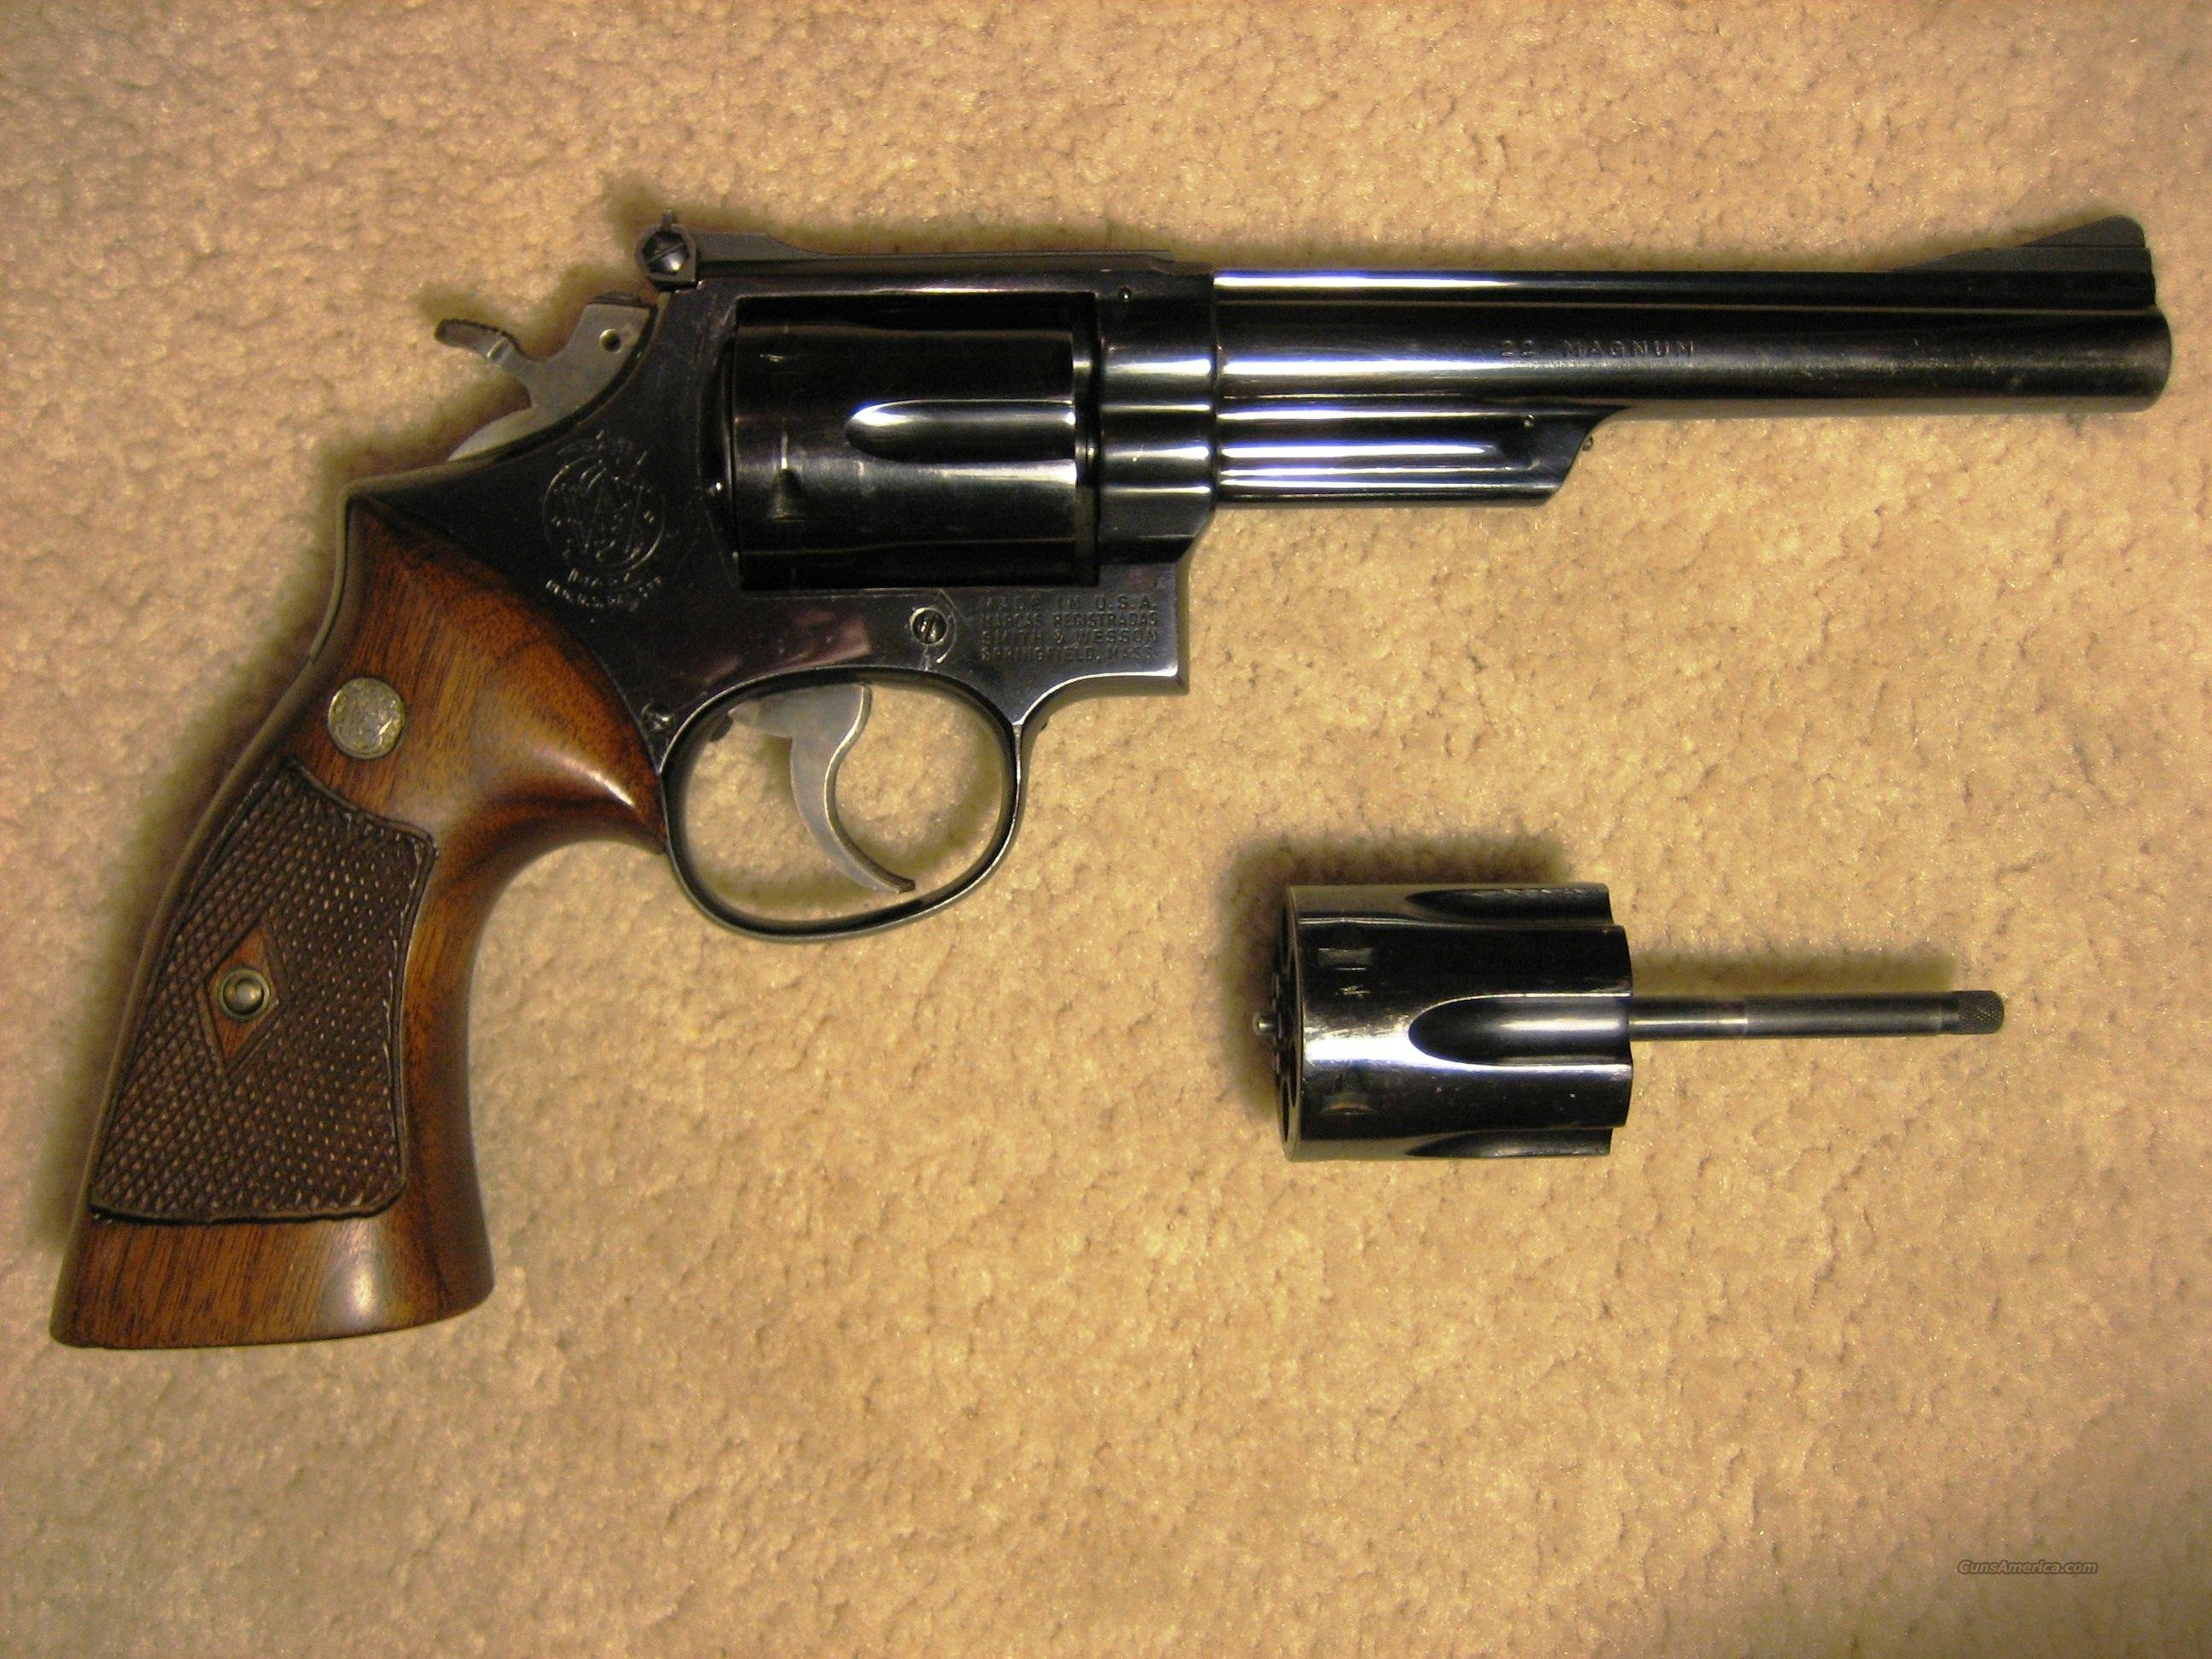 "Smith & Wesson, Mod 53, 22/22 Jet, 6"" BBL  Guns > Pistols > Smith & Wesson Revolvers > Full Frame Revolver"